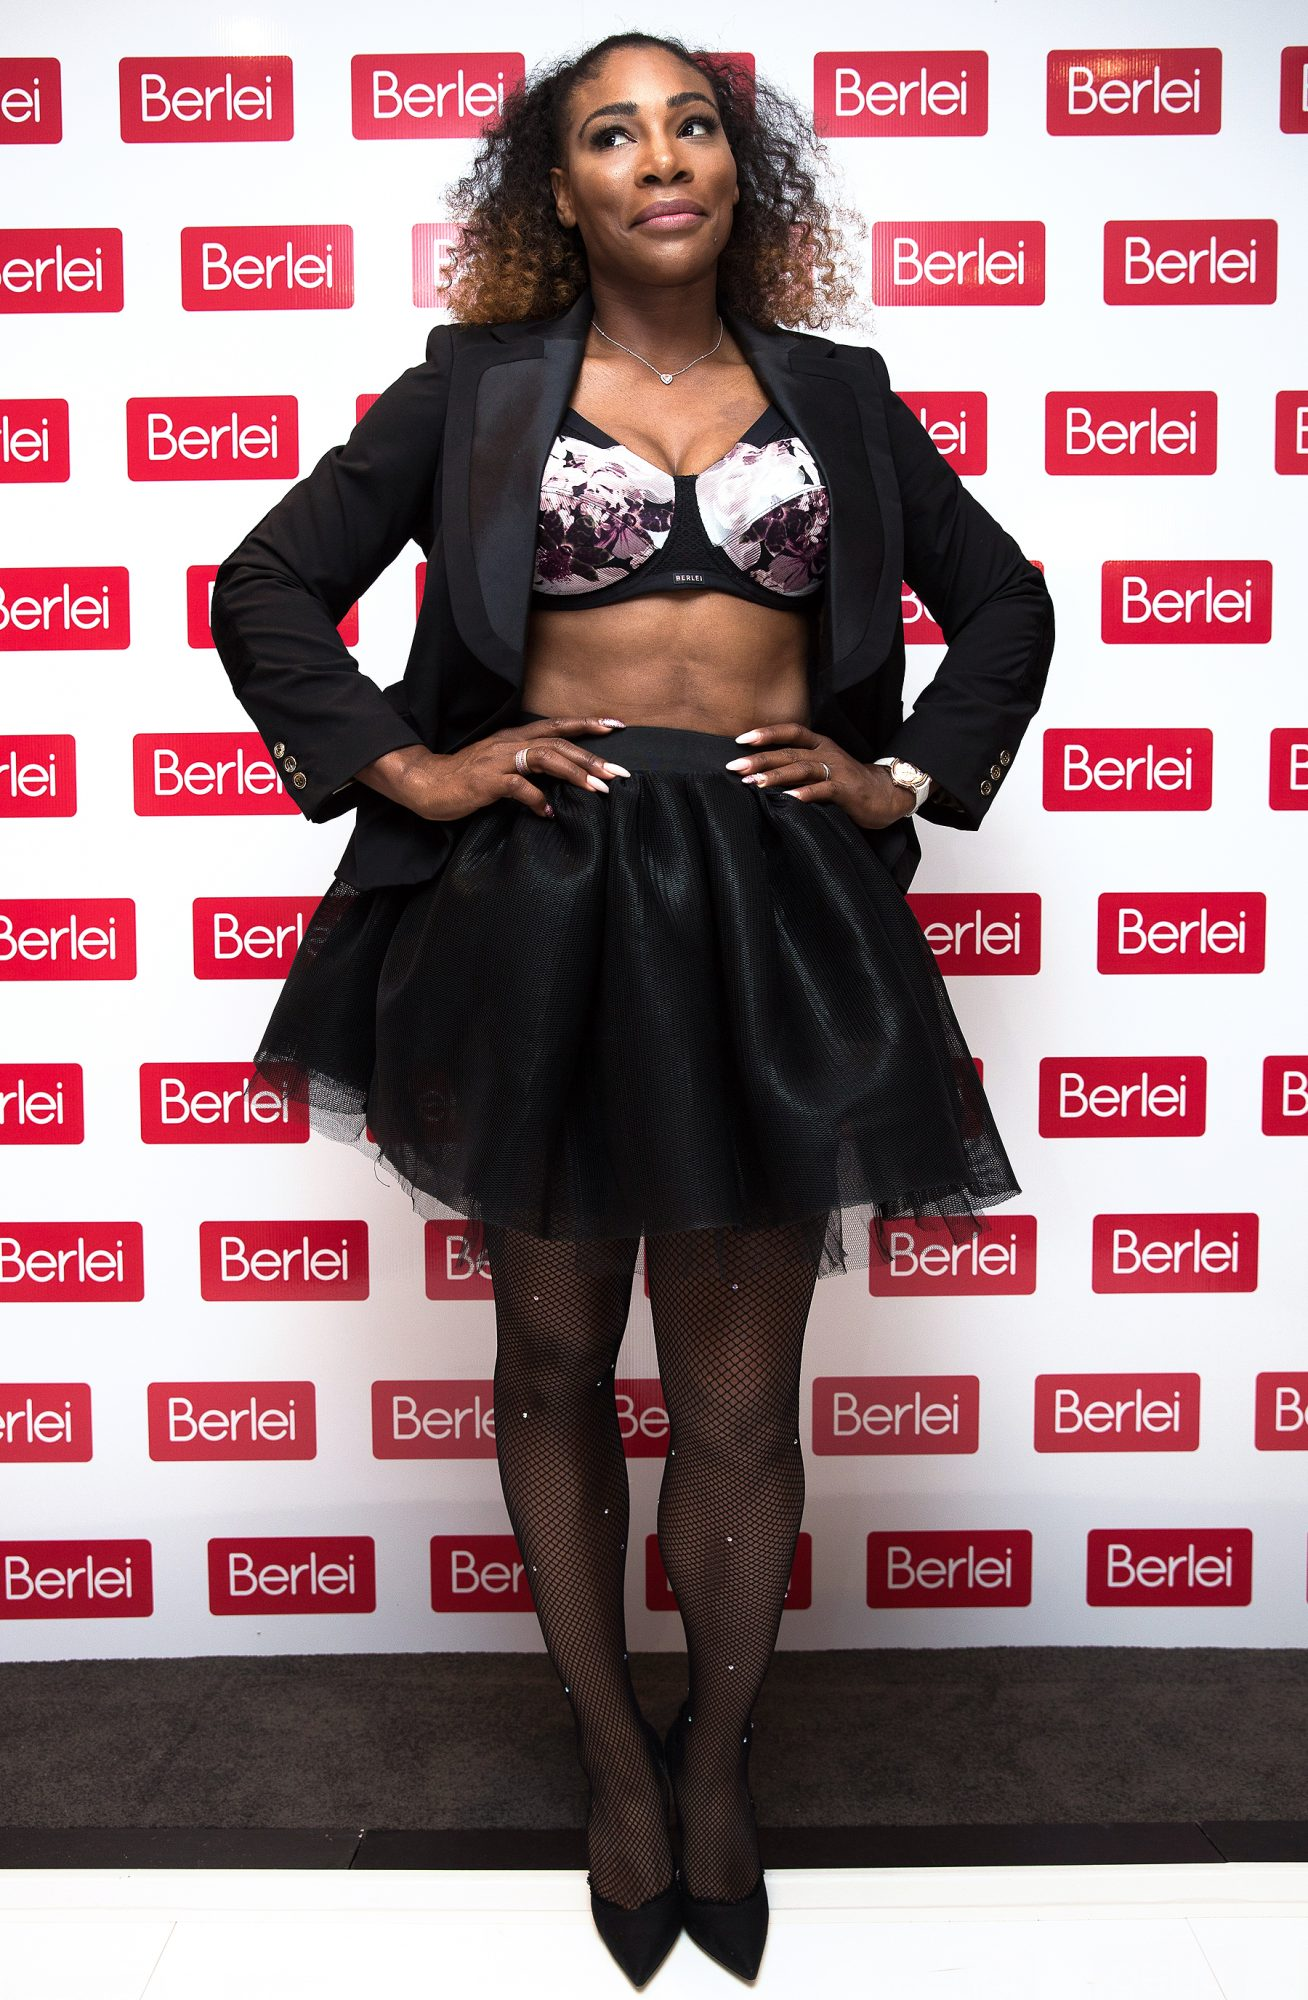 'Do it for yourself' Berlei Sport Campaign Featuring Serena Williams